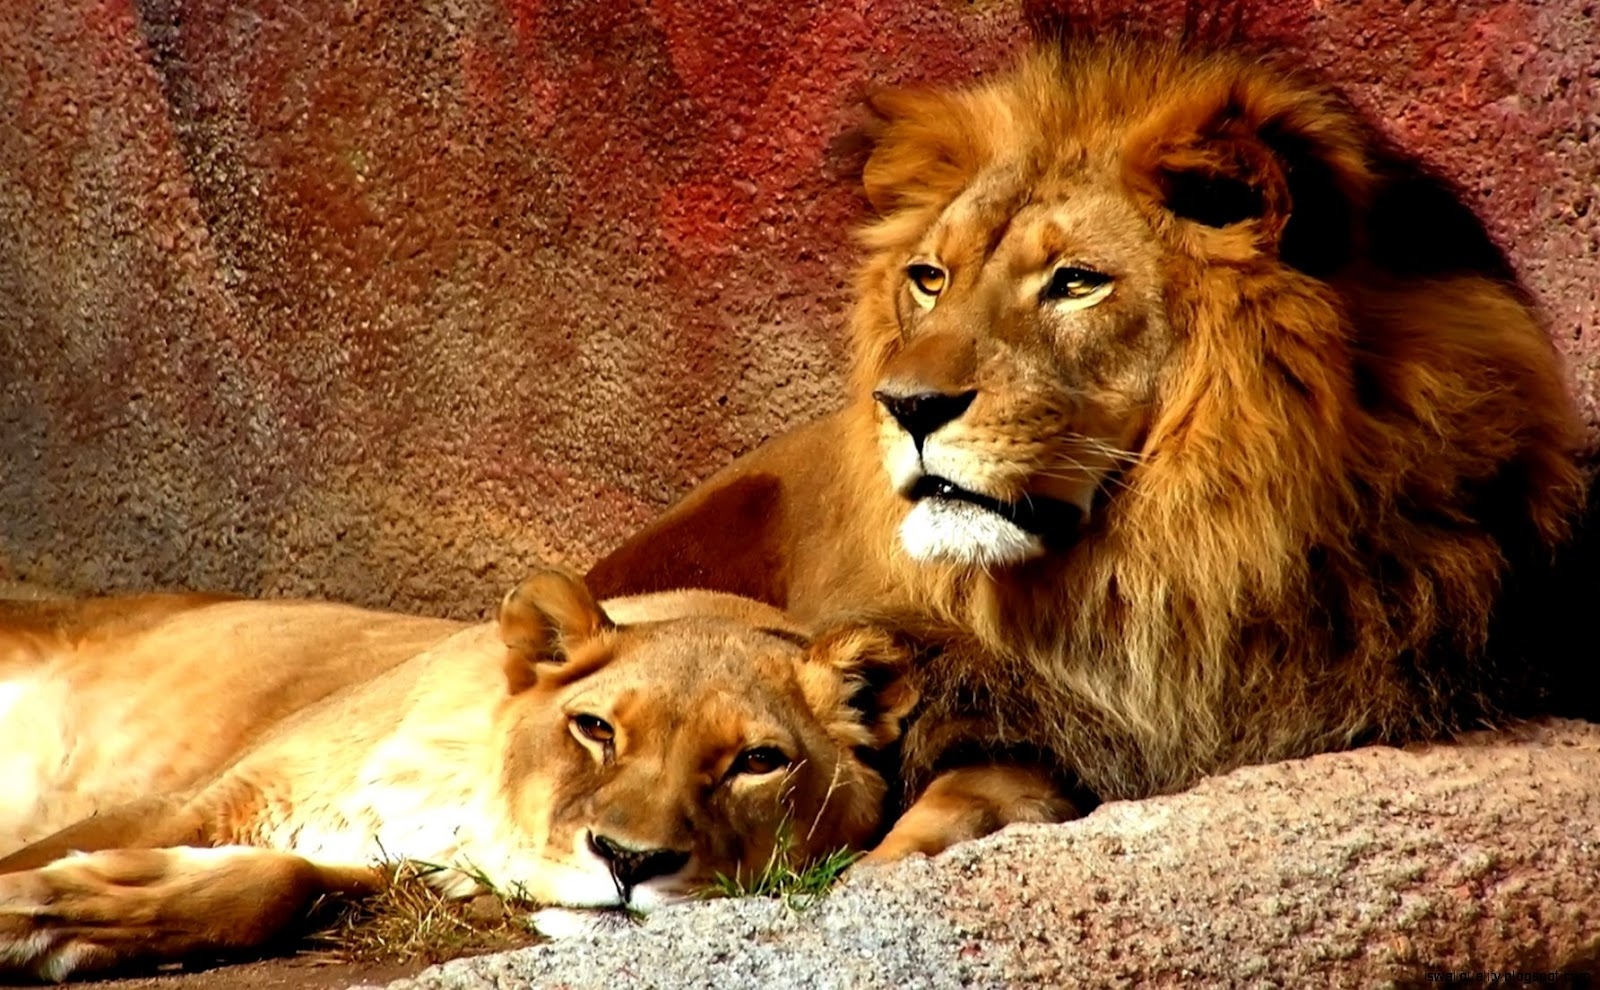 Lion And Lioness Wallpaper Hd Wallpapers Quality